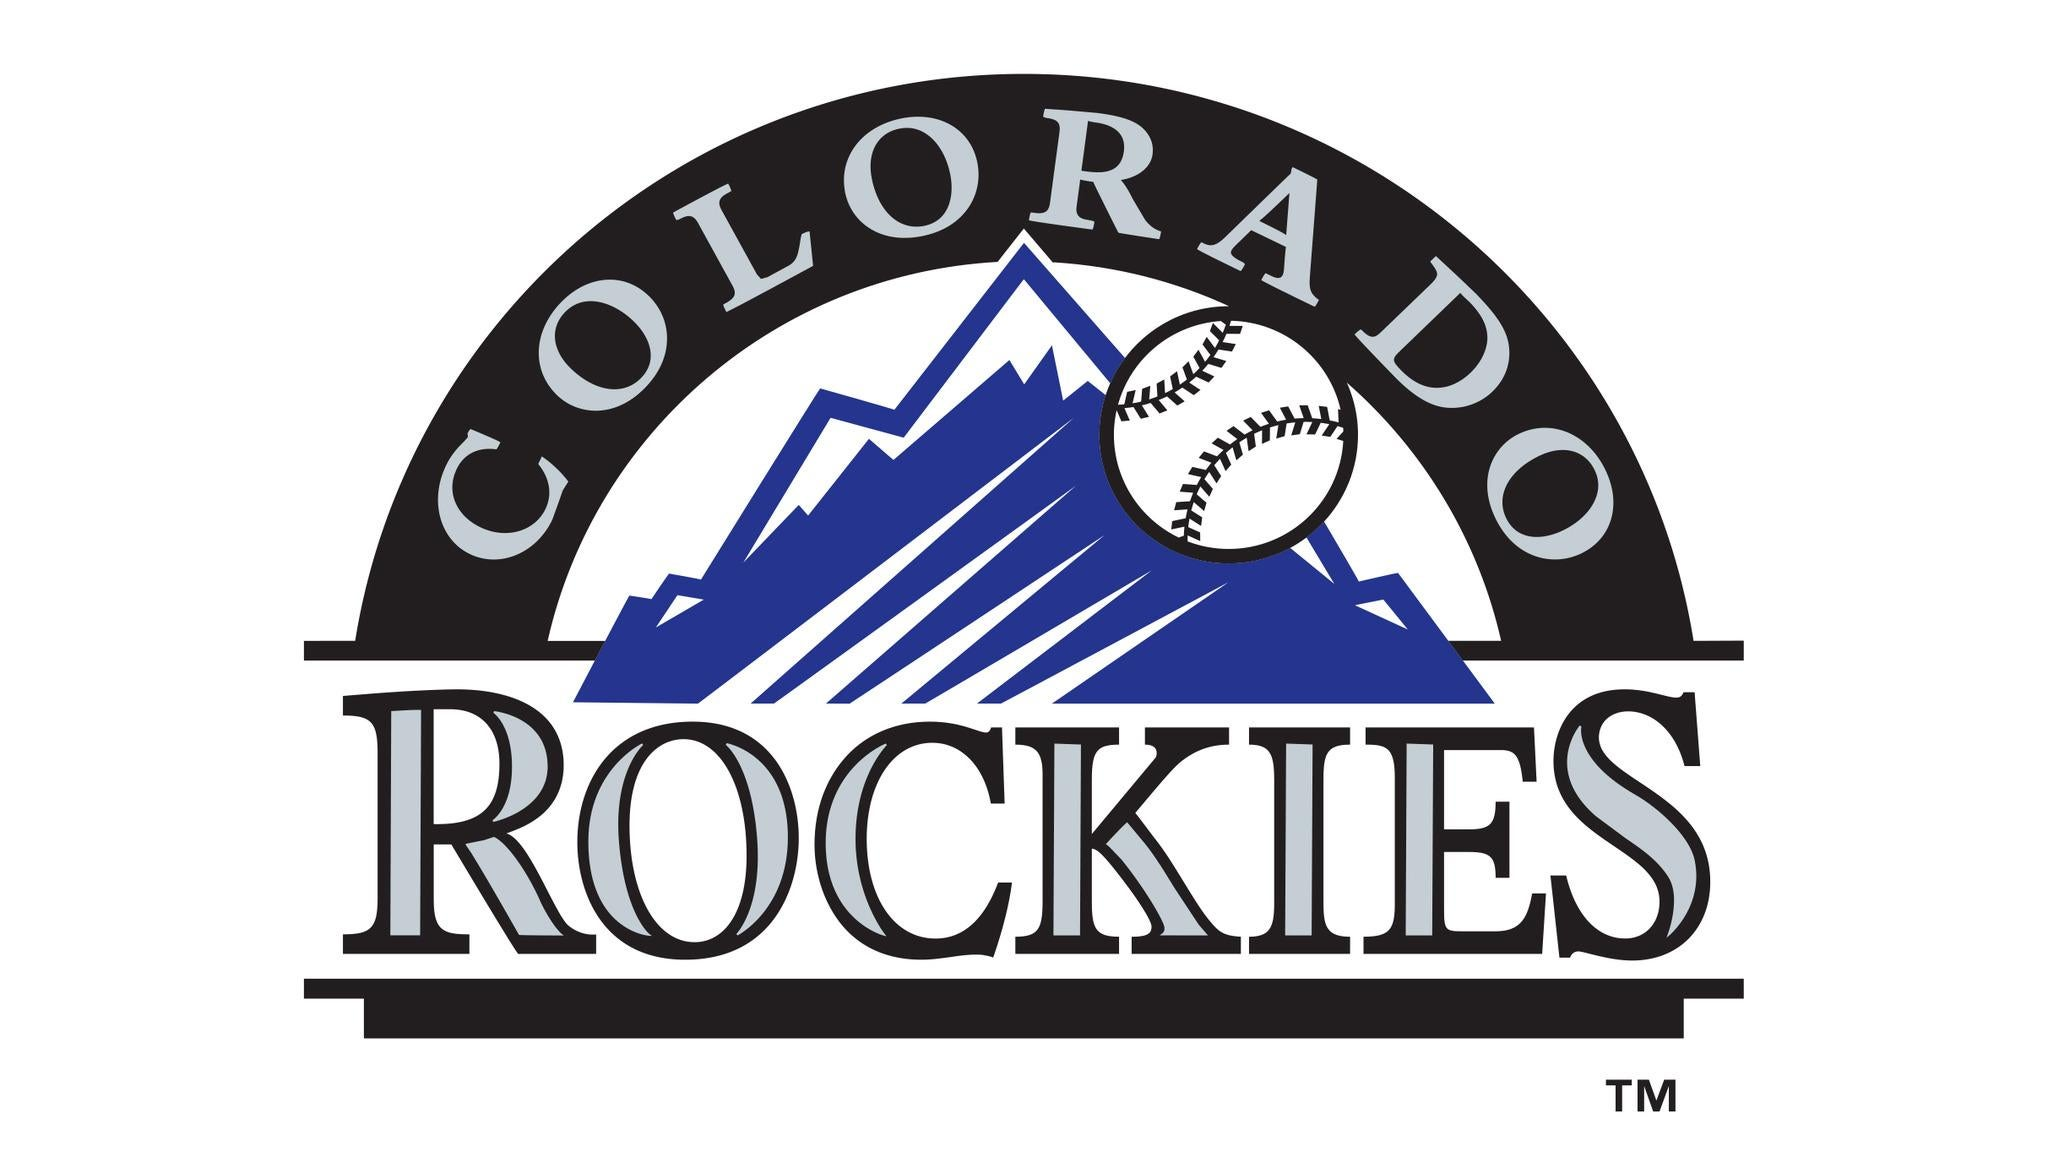 Colorado Rockies vs. Arizona Diamondbacks at Coors Field - Denver, CO 80205